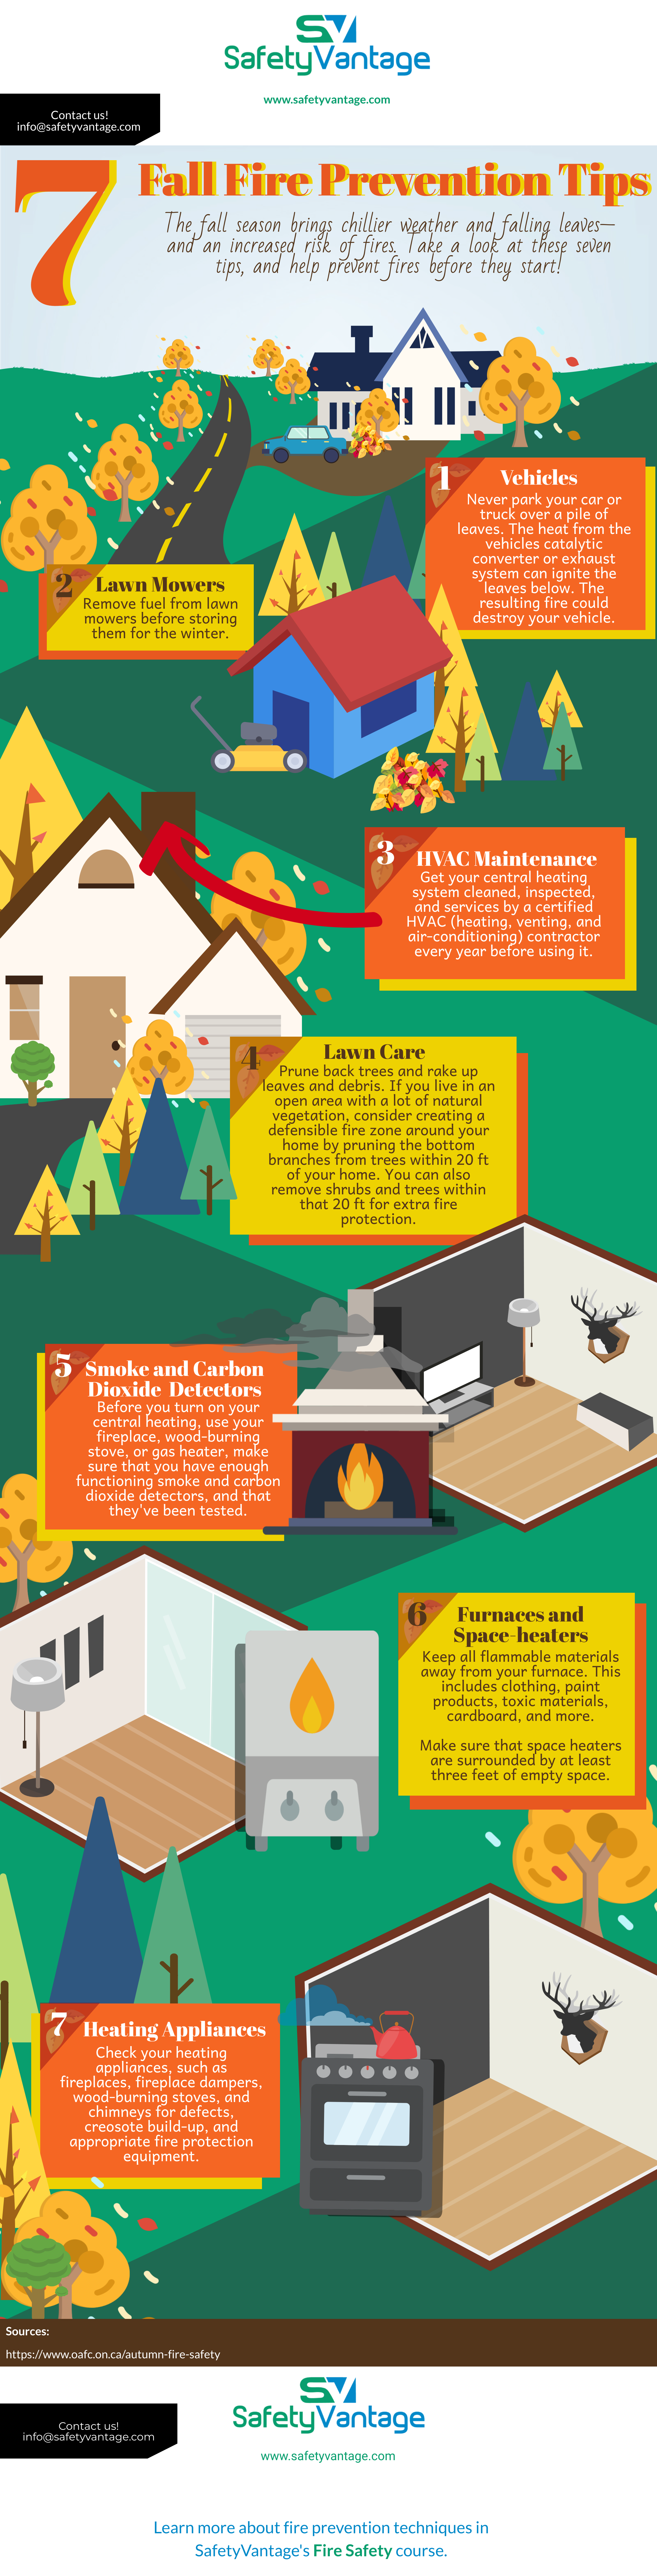 InfoGraphic: Fall Fire Prevention Tips - During the Fall there's an increased risk of fires. Take a look at these seven tips and help prevent fires before they start.